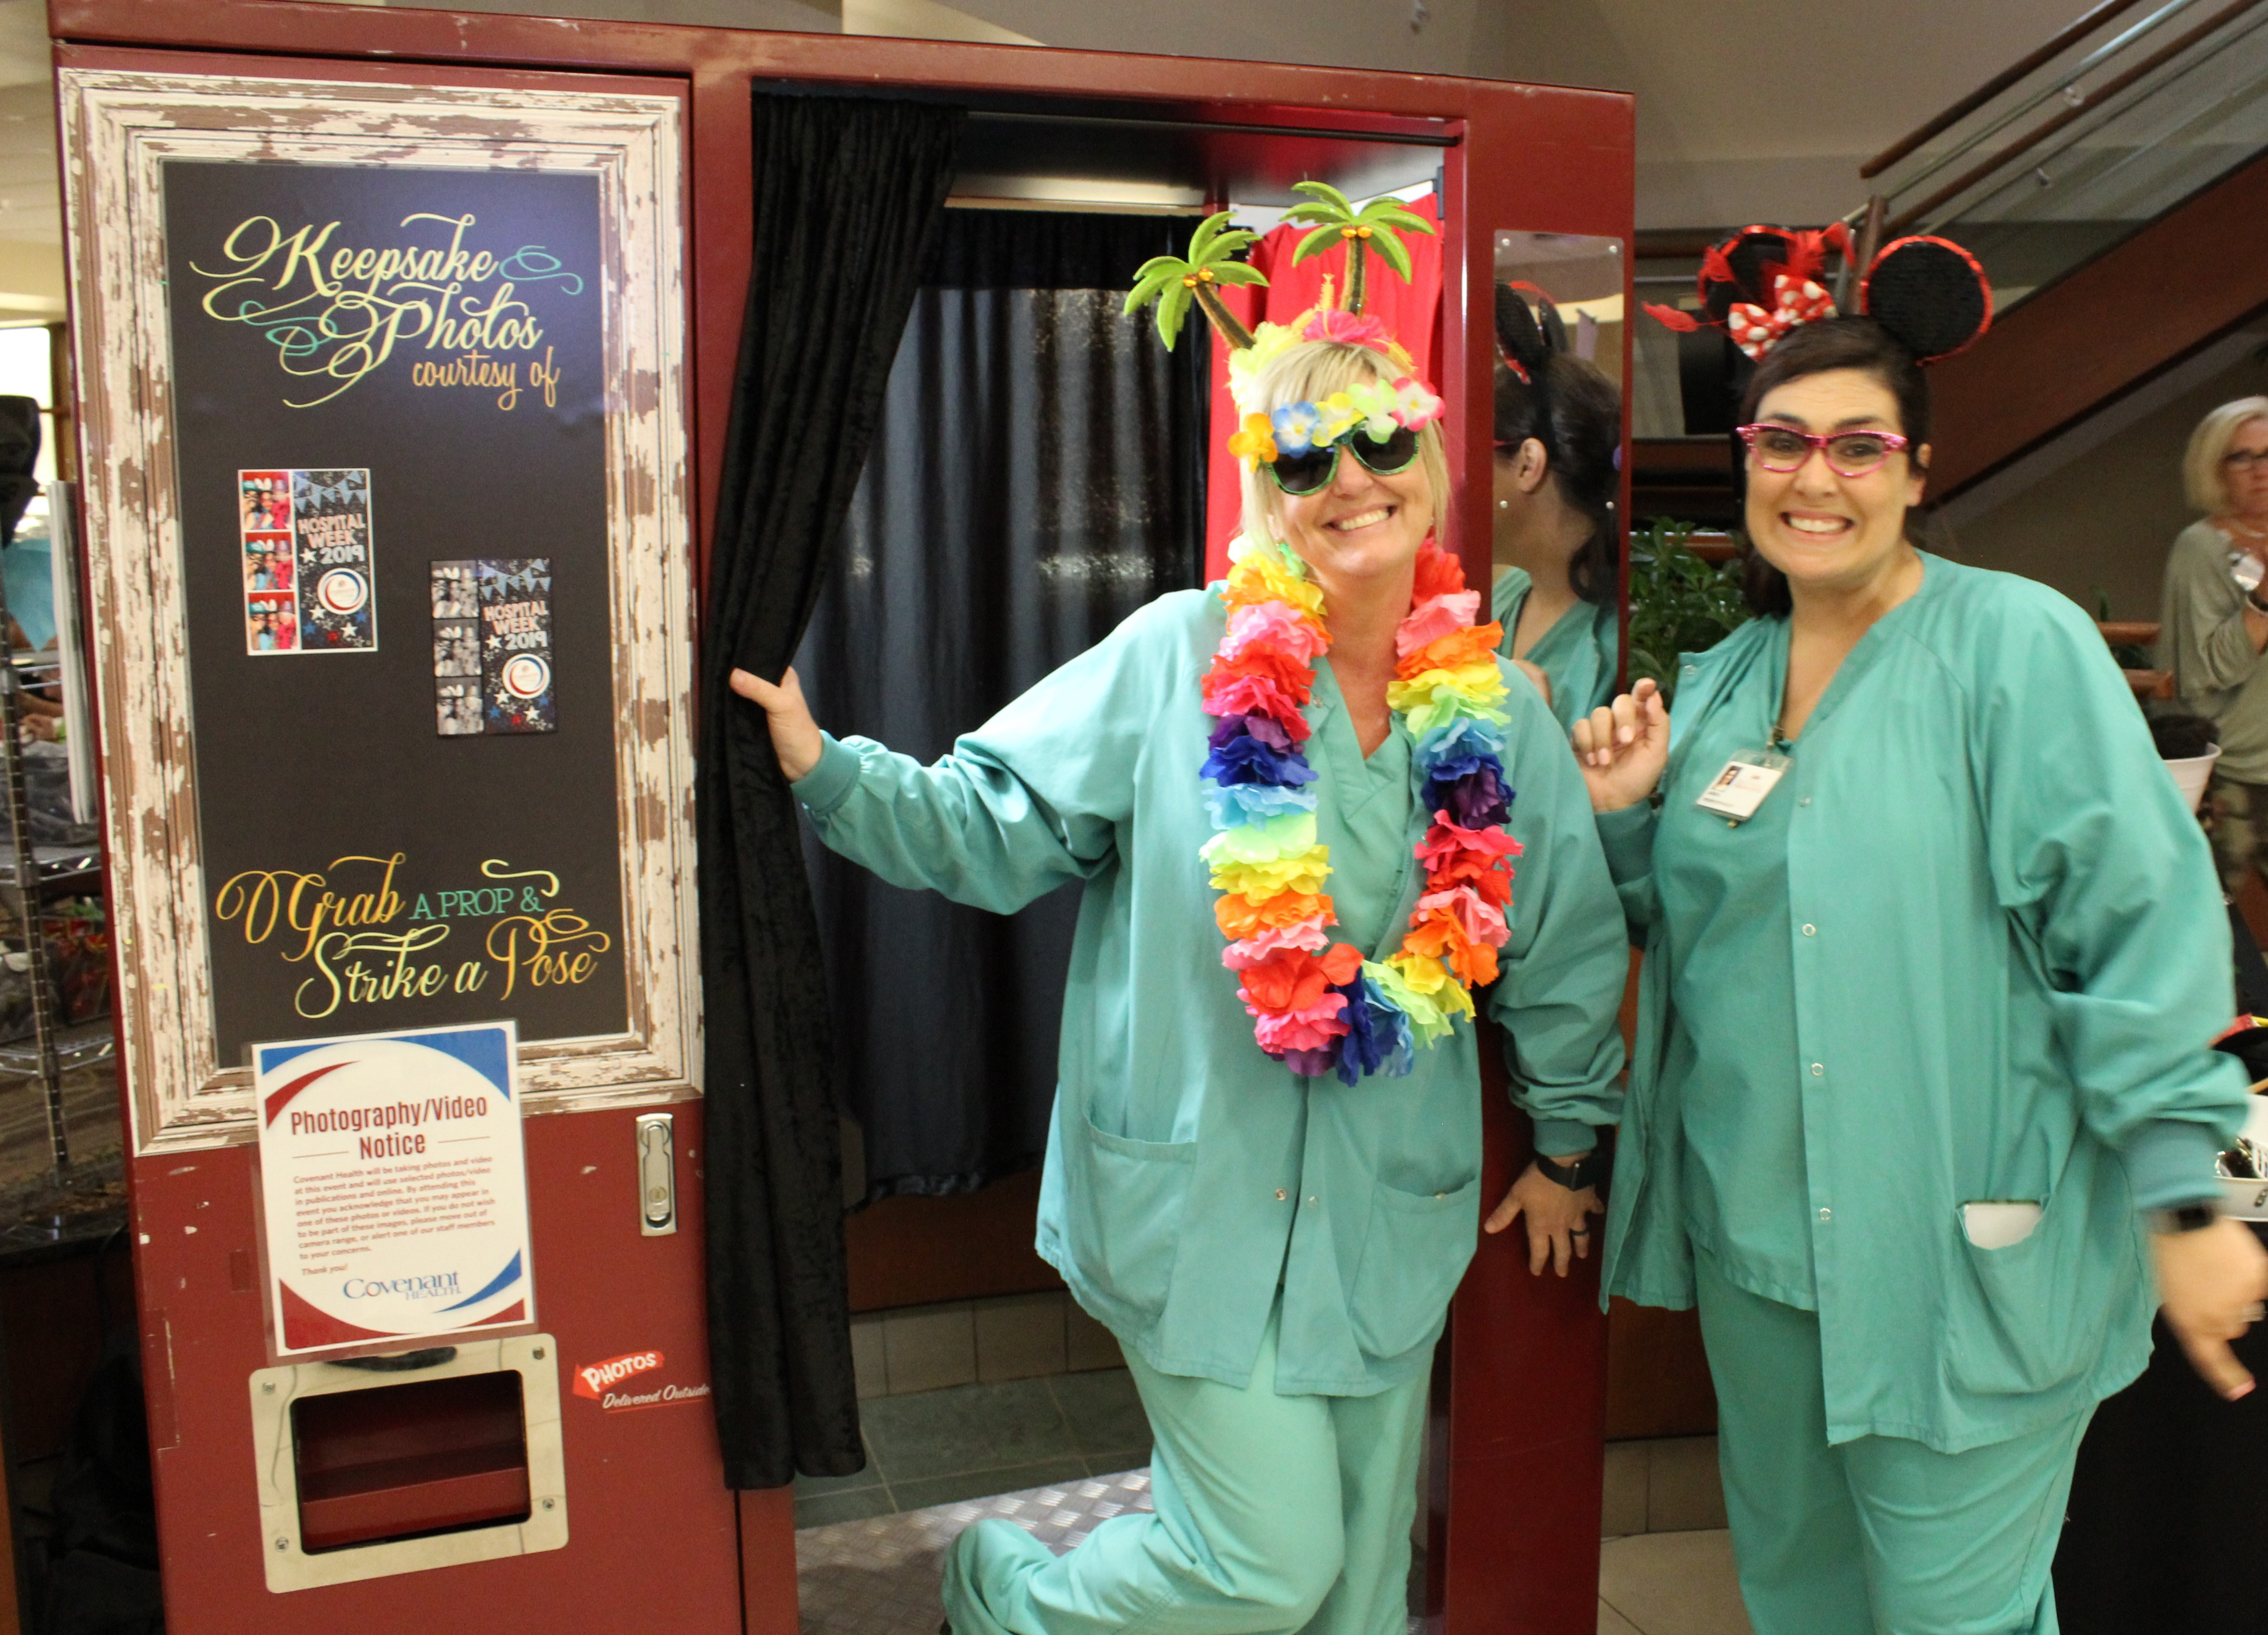 Surgery team dressed for photo booth fun